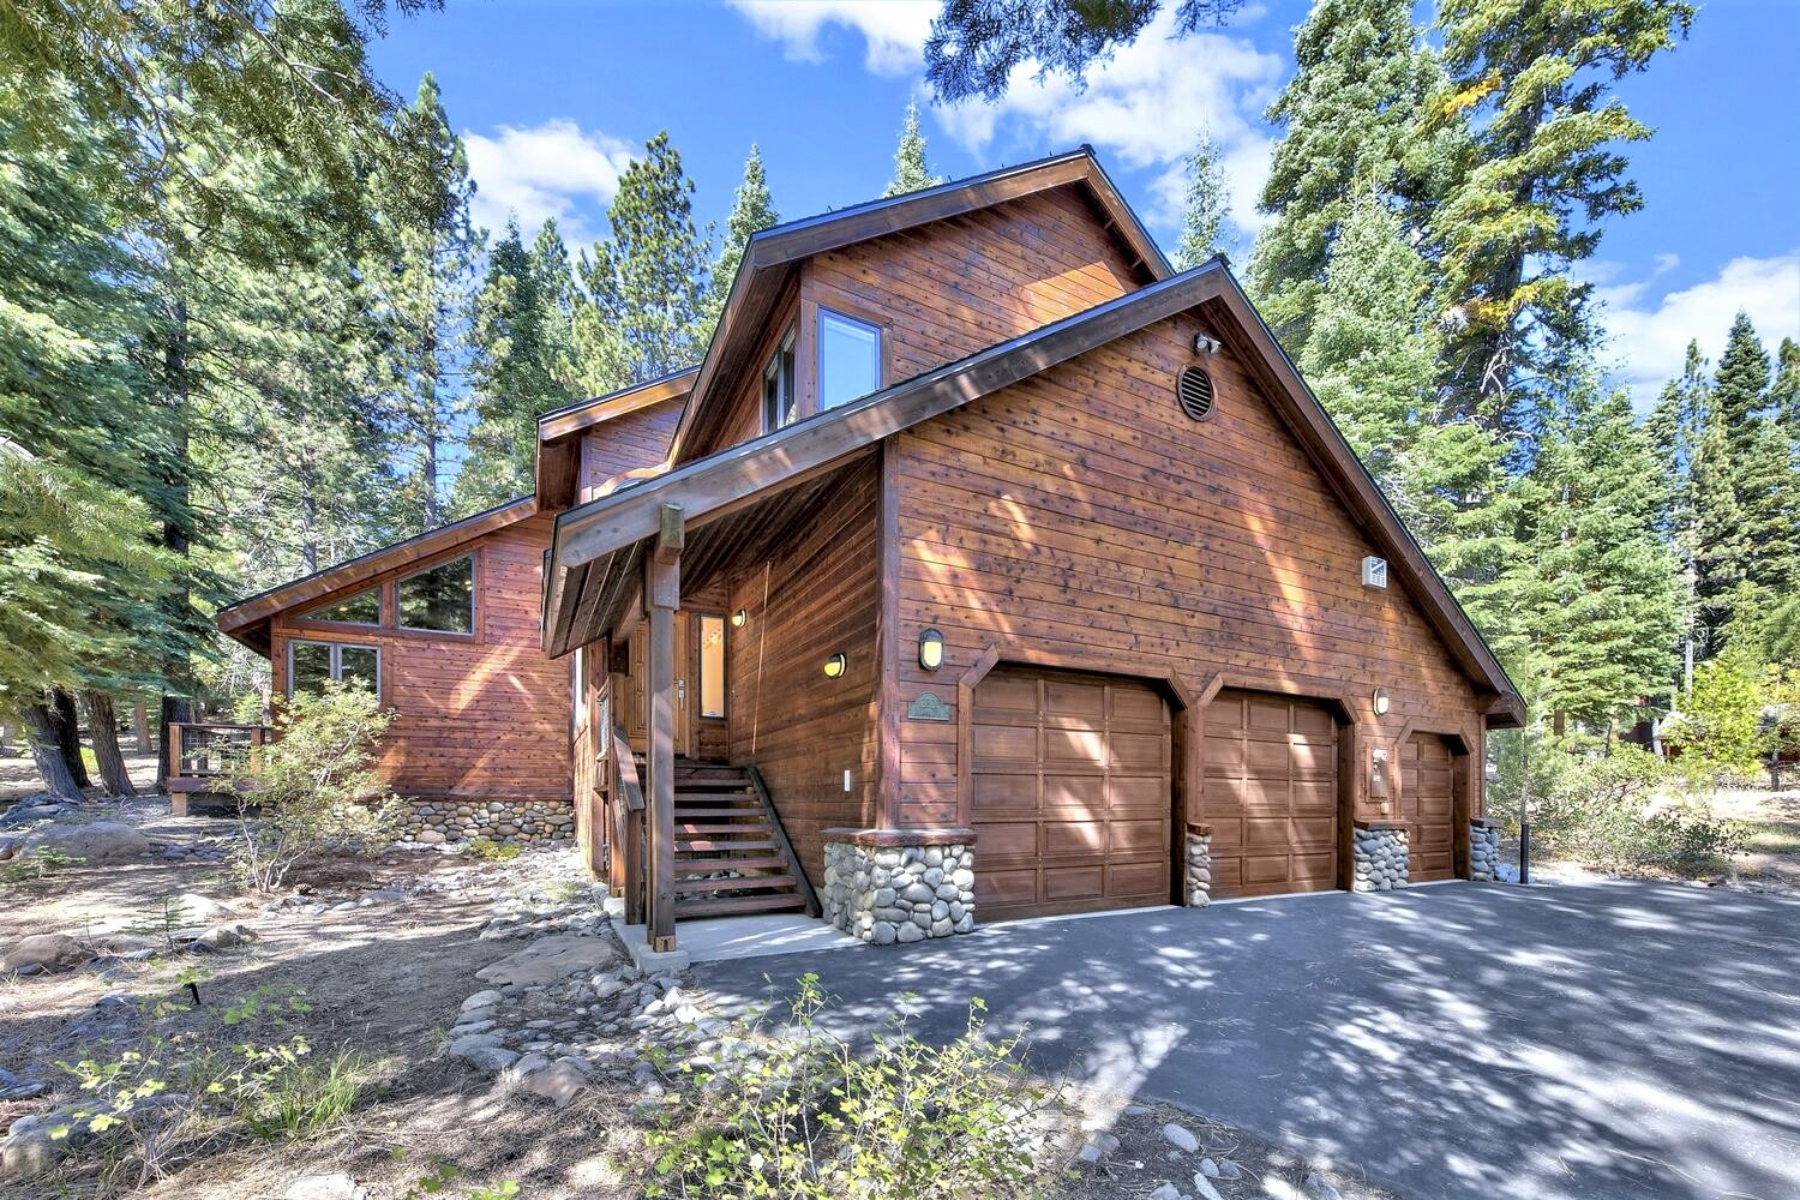 Single Family Homes for Active at Private Setting In Tahoe Donner 12320 Telemark Place Truckee, California 96161 United States